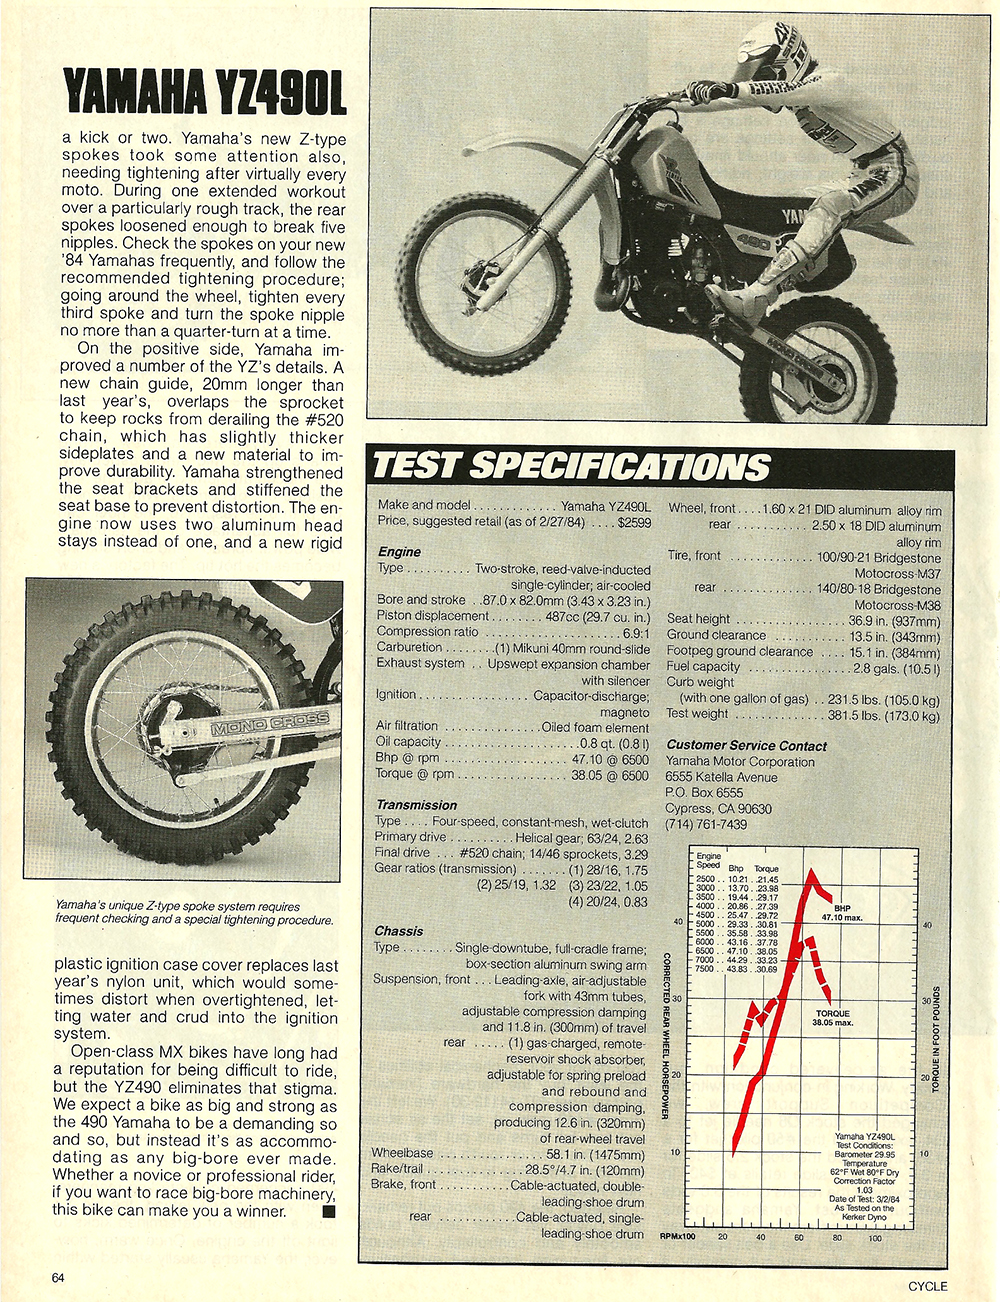 1984 Yamaha YZ490L off road test 7.jpg